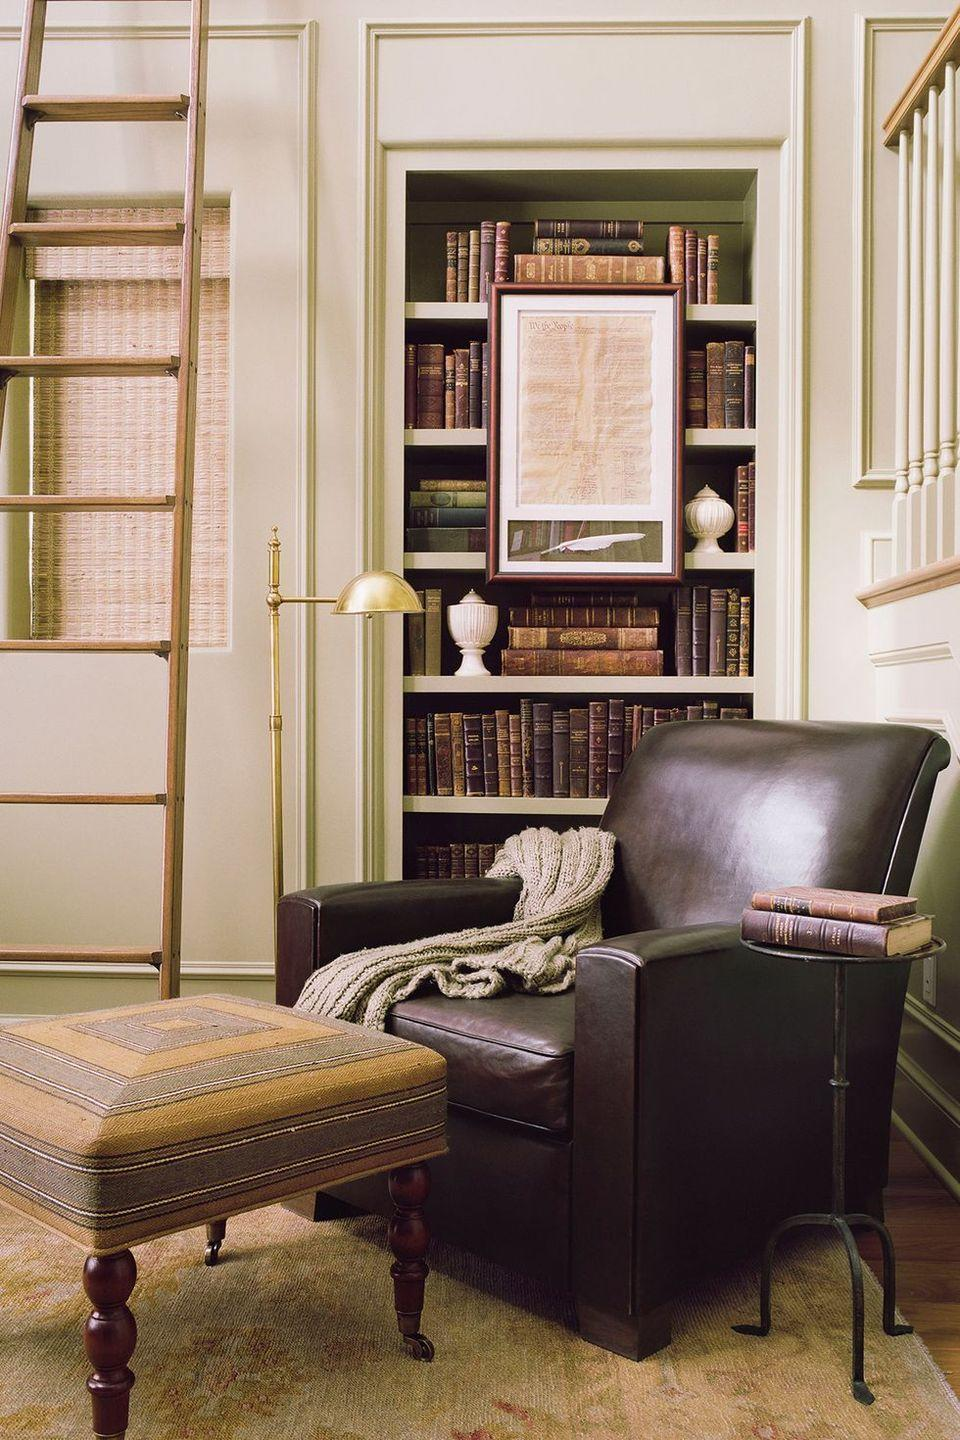 <p>Play up your love of all things traditional with a timeless look, complete with an upholstered leather chair and built-in bookshelves.</p>